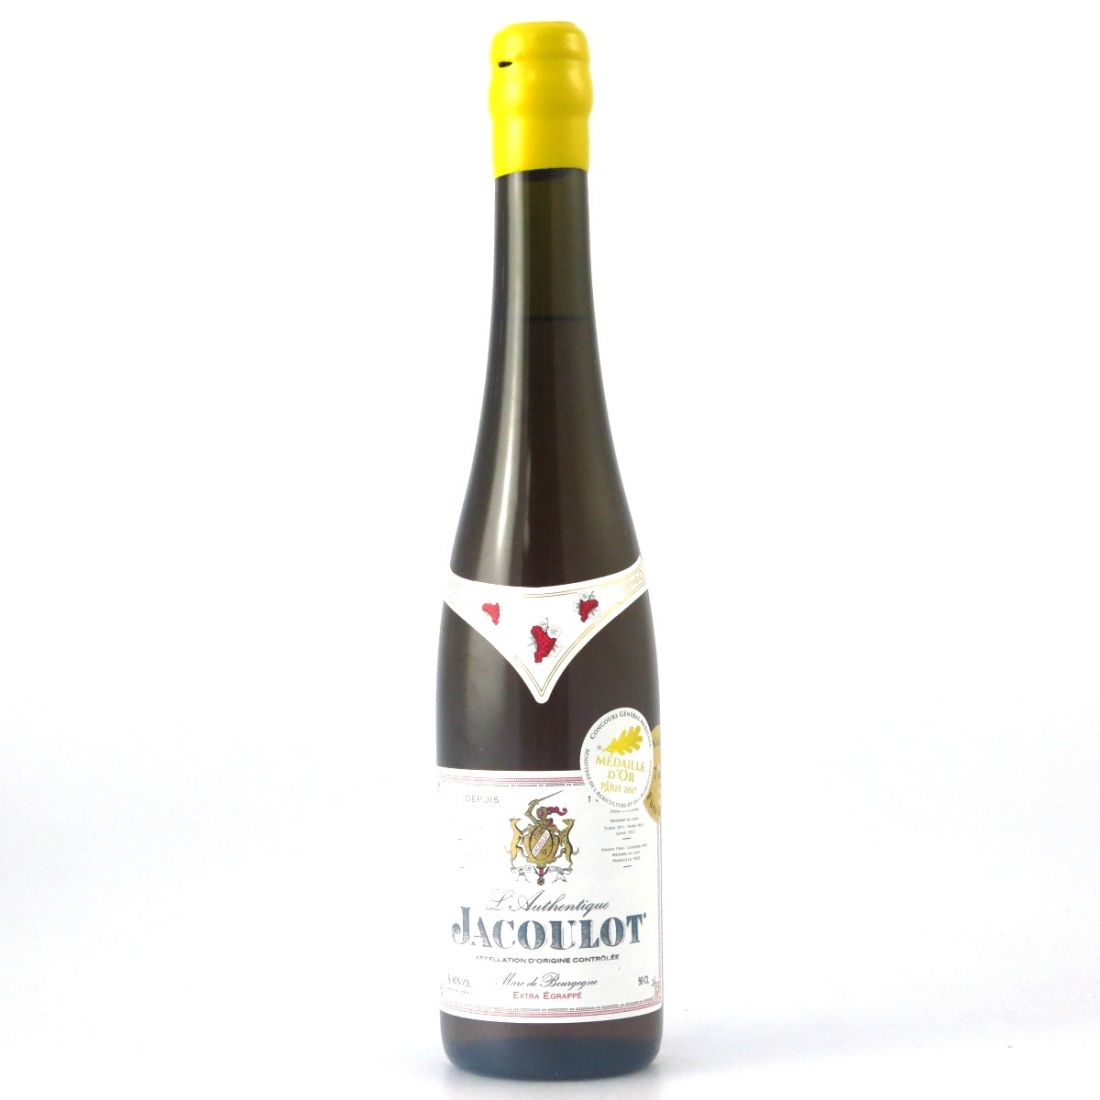 Vincent Jacoulot 7 Year Old Fine Bourgogne Brandy / Extra Egrappa